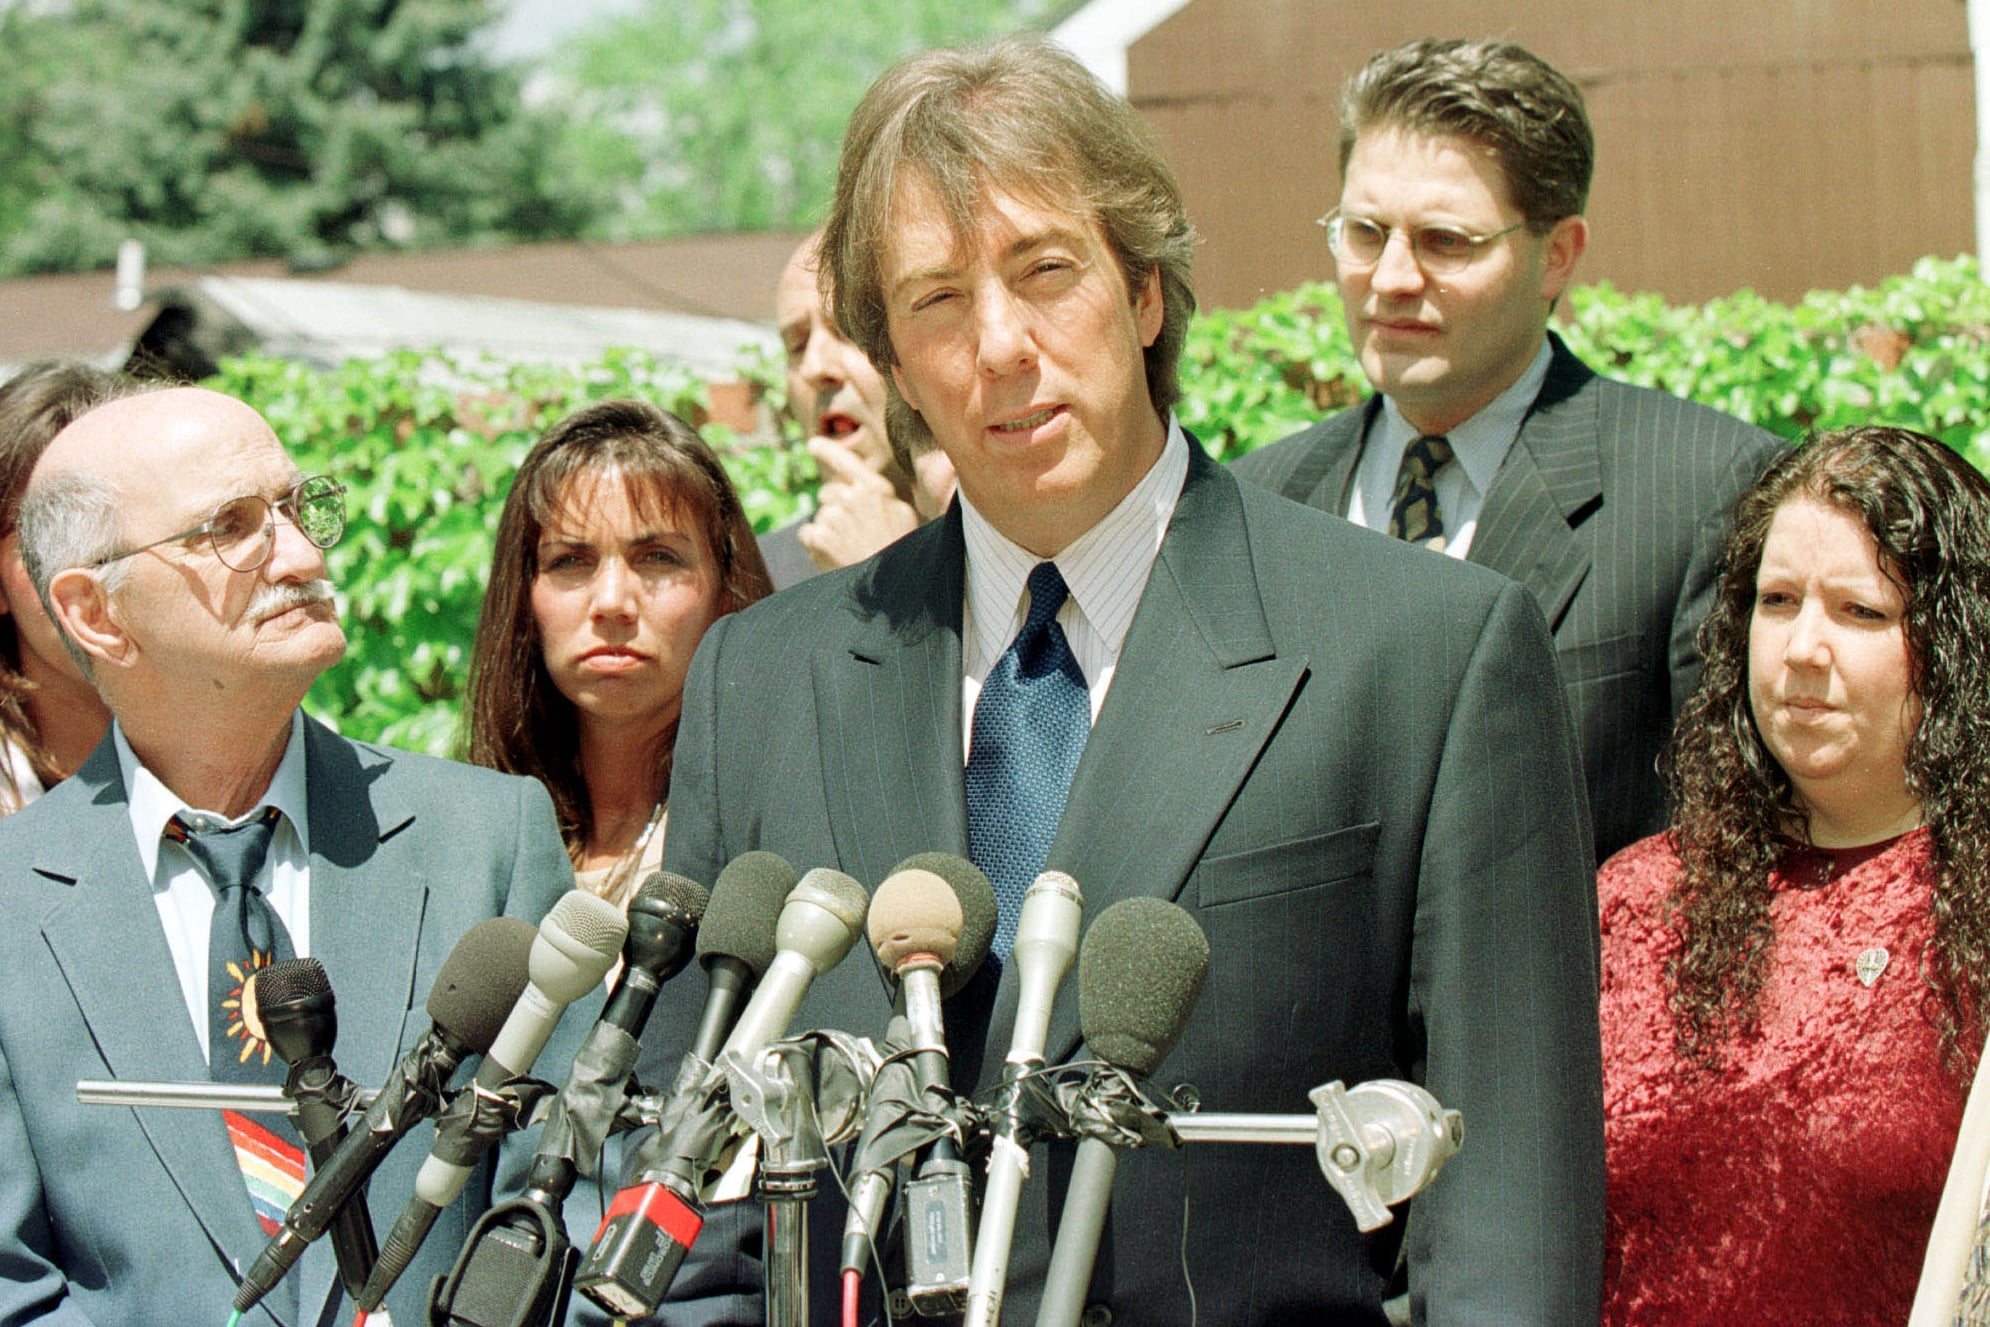 N 350770 003 May 7, 1999 Southfield, Michigan, Usa Attorney Geoffrey Fieger(R) Stands With Frank Amadure (L) And The Amadure Family At A Press Conference In Southfield, Mi.  (Photo By Bill Pugliano/Getty Images)